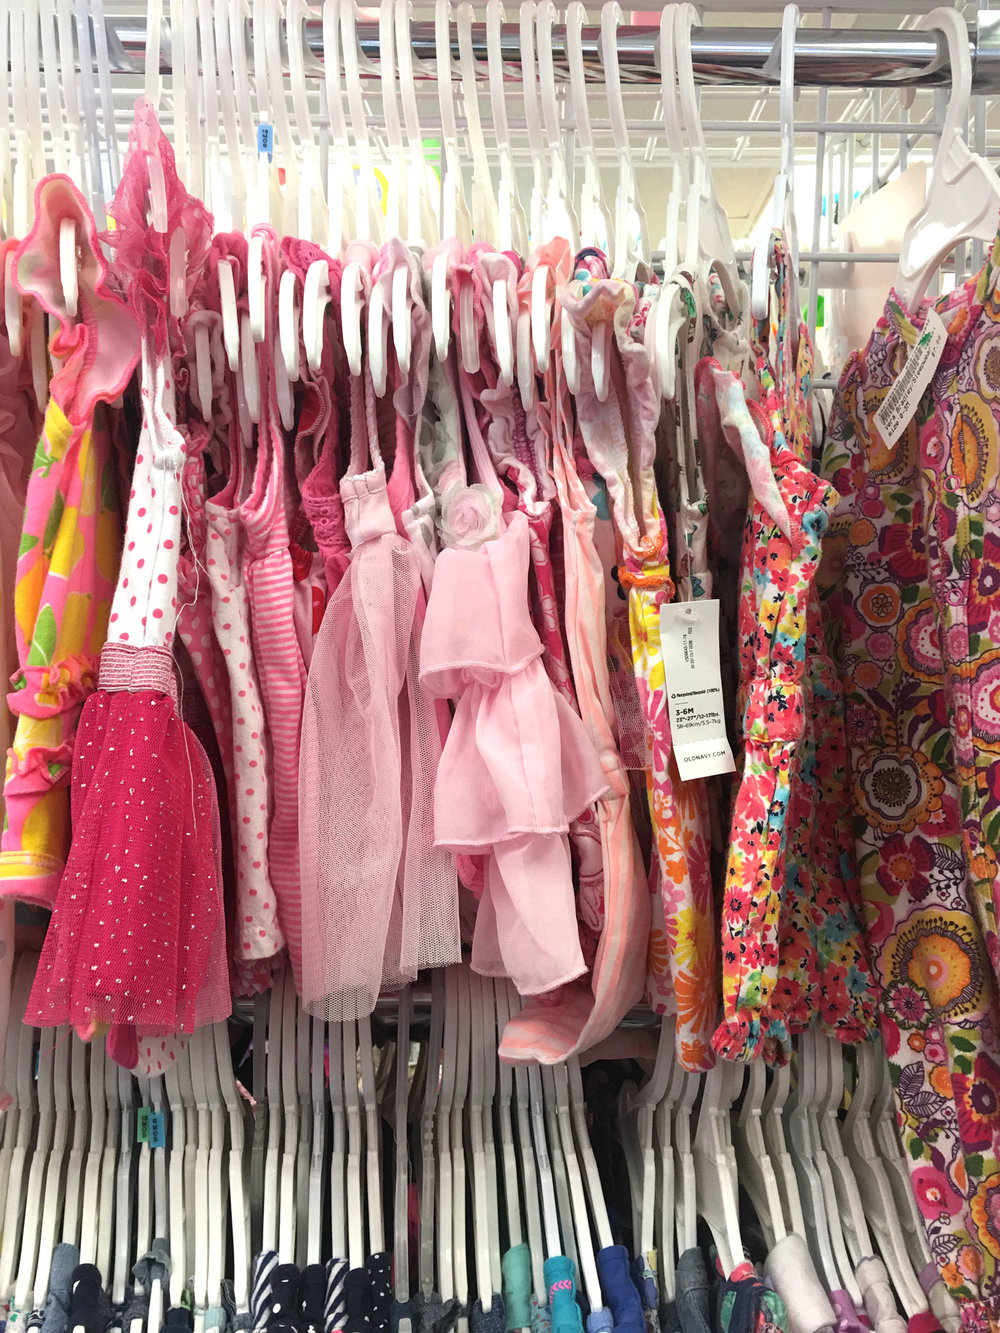 Adorable pink frilly dresses? They have 'em.